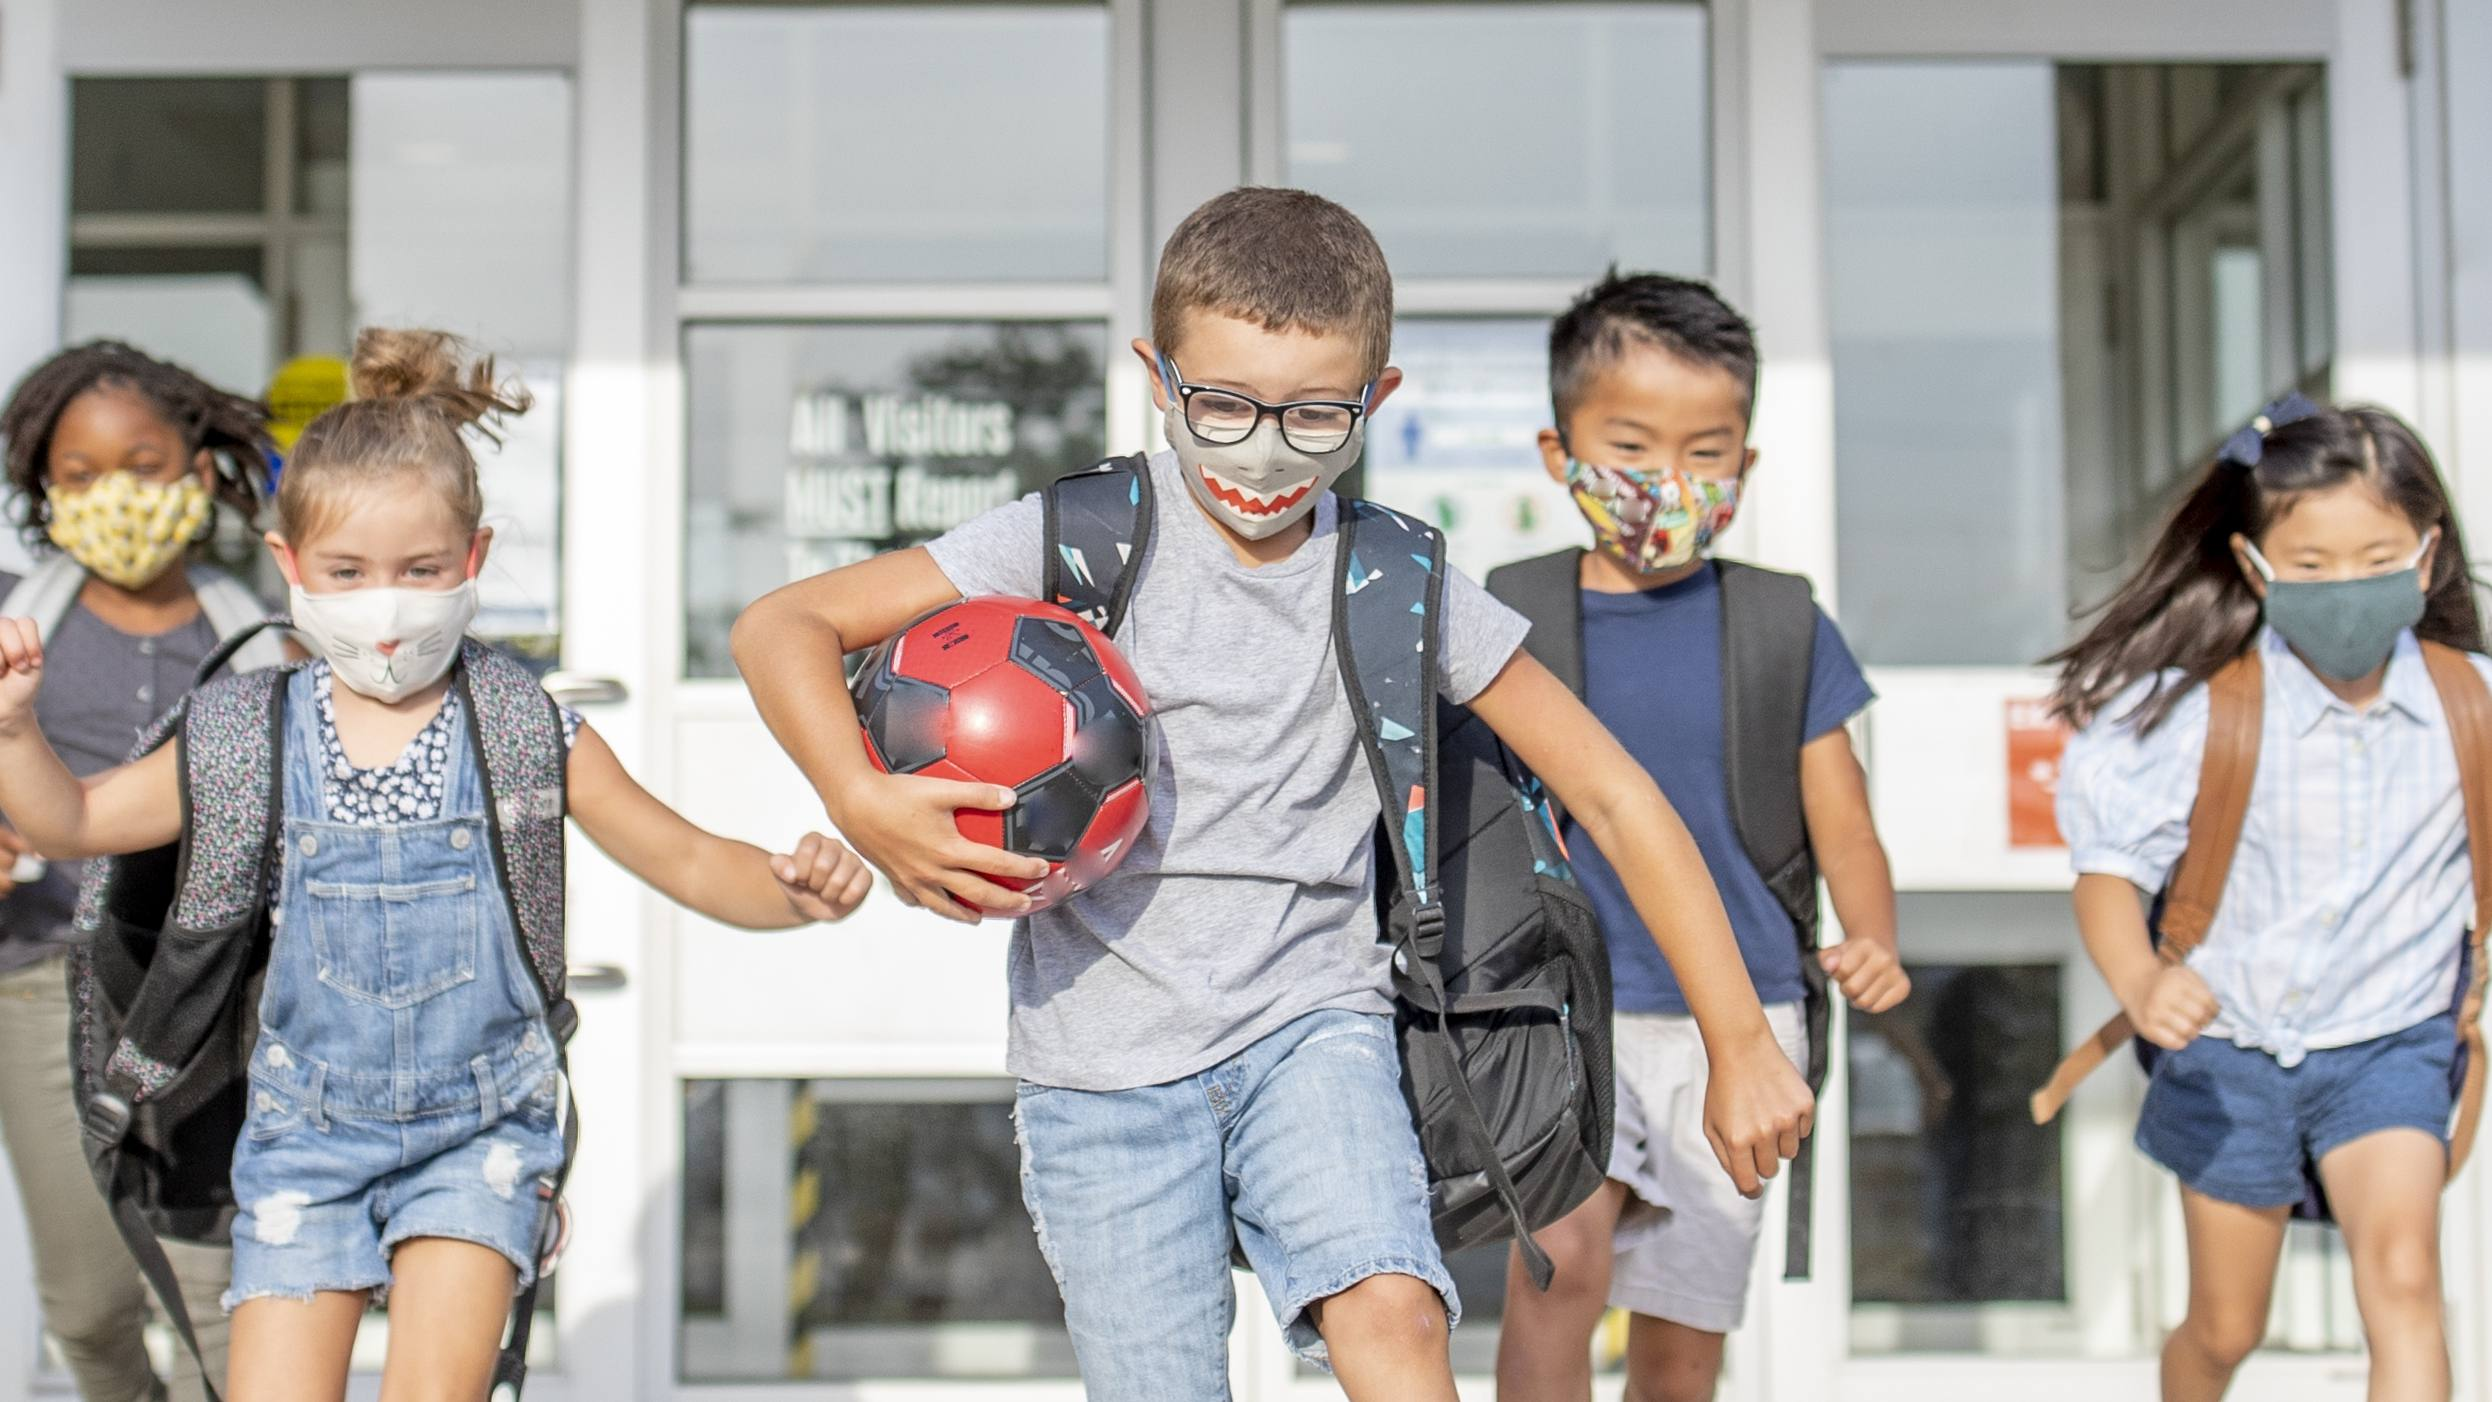 a group of young, diverse elementary school children wearing masks and running outisde